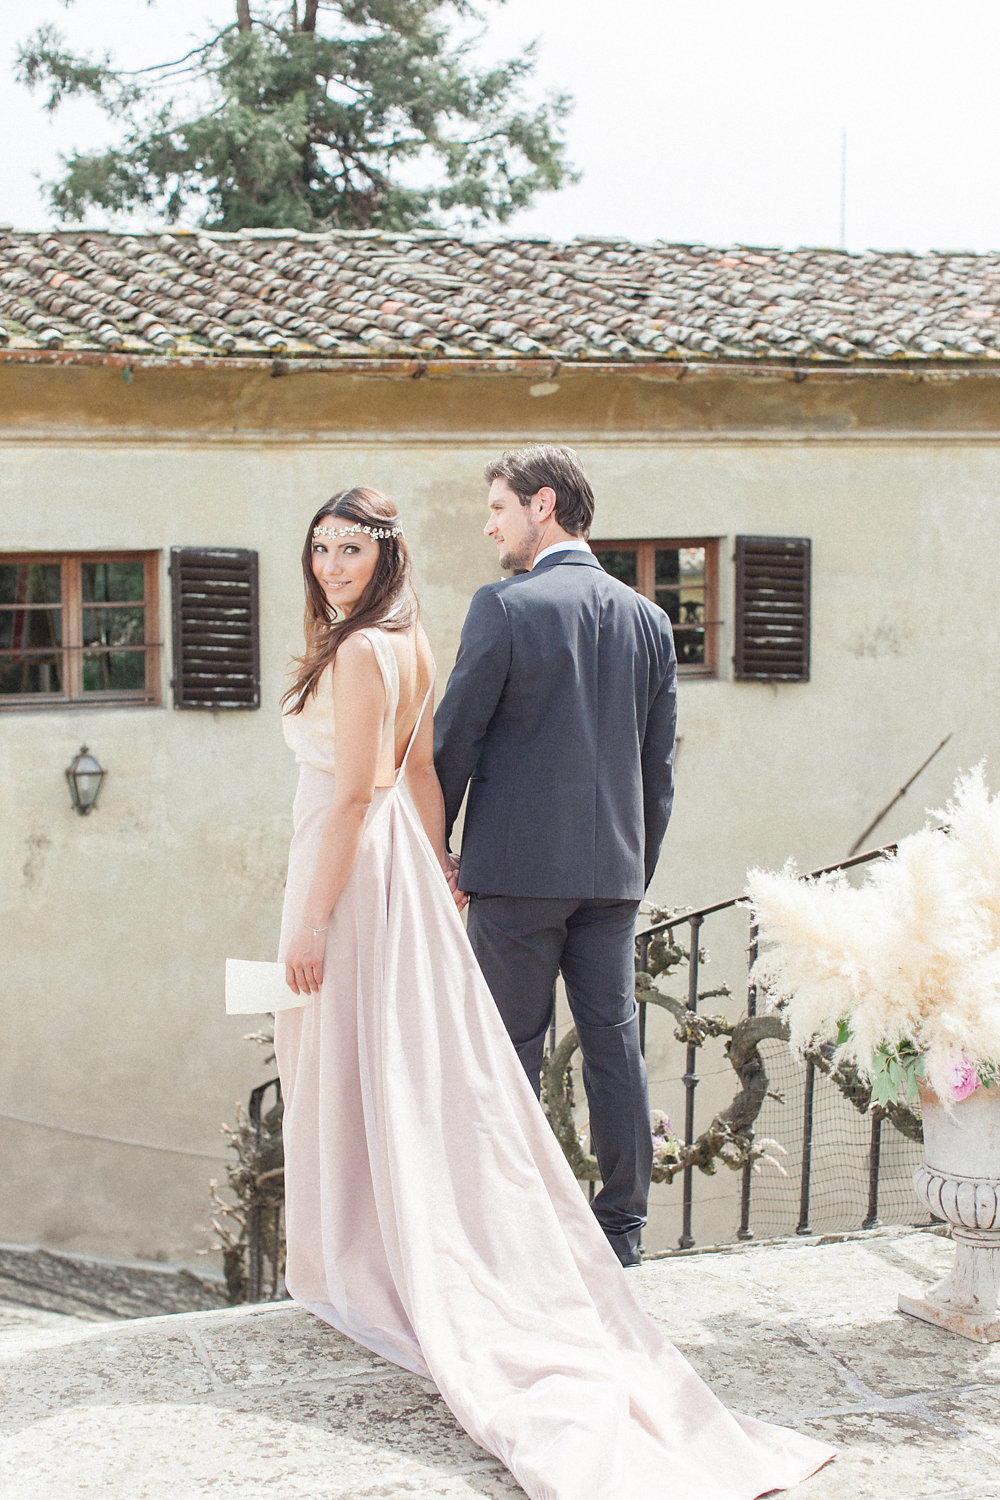 Tuscany Italy Wedding Photographer Roberta Facchini 26